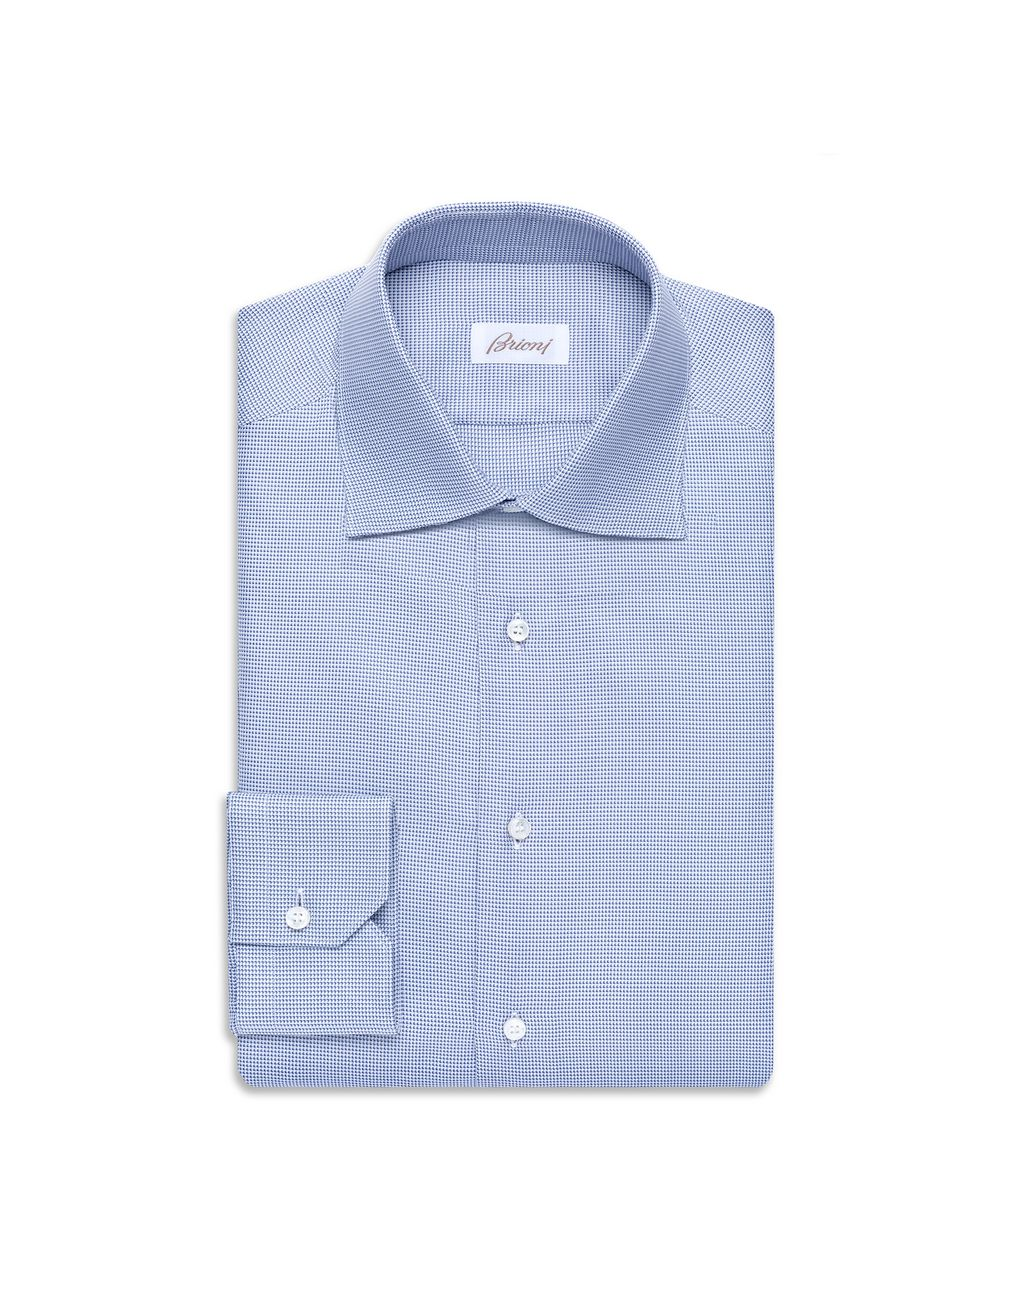 BRIONI Bluette and White Micro -Designed Formal Shirt Formal shirt [*** pickupInStoreShippingNotGuaranteed_info ***] f